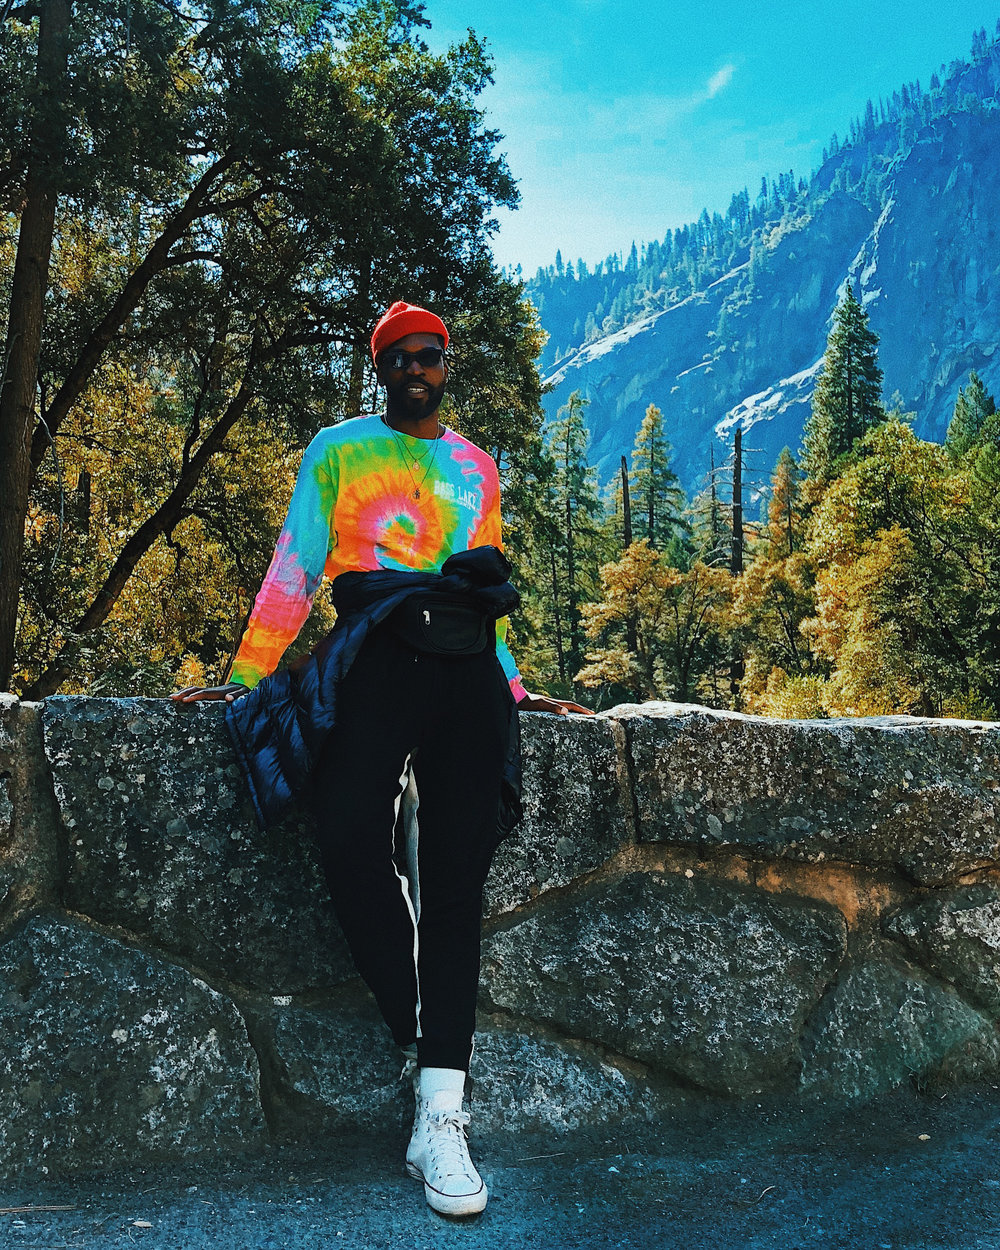 Traveler Feeds His Love For The Outdoors By Conquering Yosemite National Park - Stylist Alexander-Julian (@alexanderjulian) tells Travel Noire about his journey to Yosemite National Park.